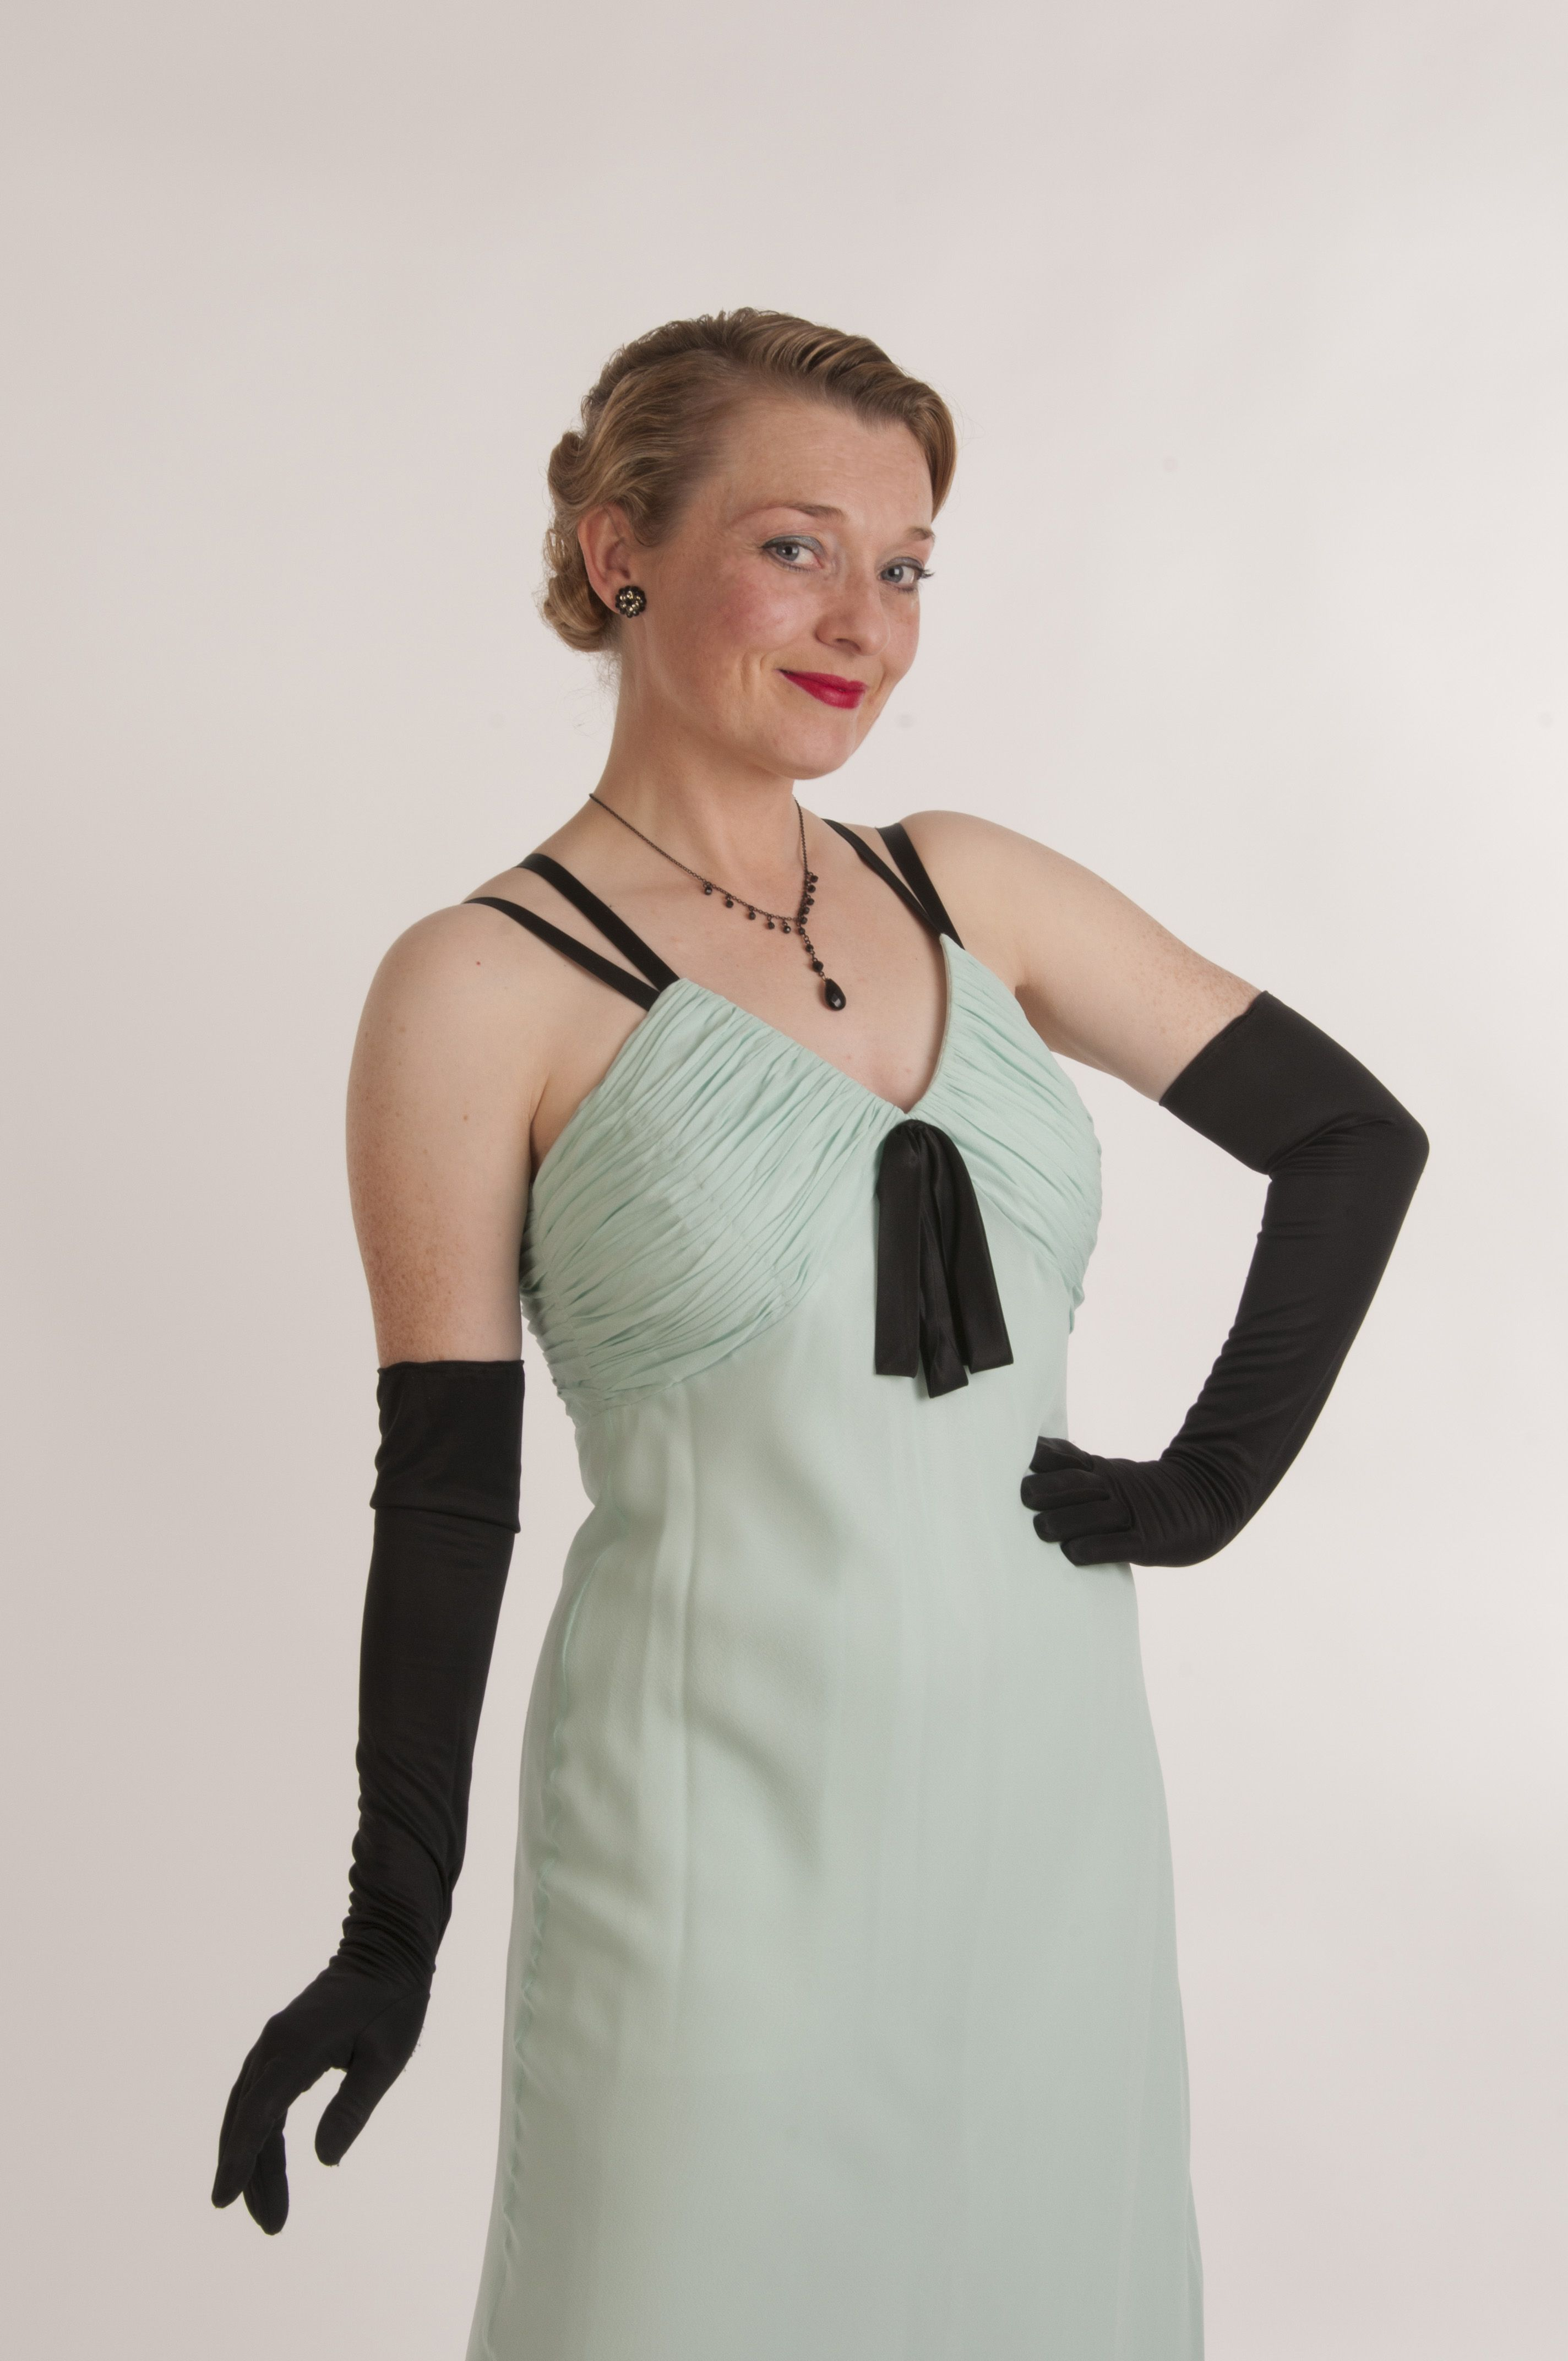 Black gloves for gown - Fiona Harrison In A Mint Green Evening Gown And Black Gloves